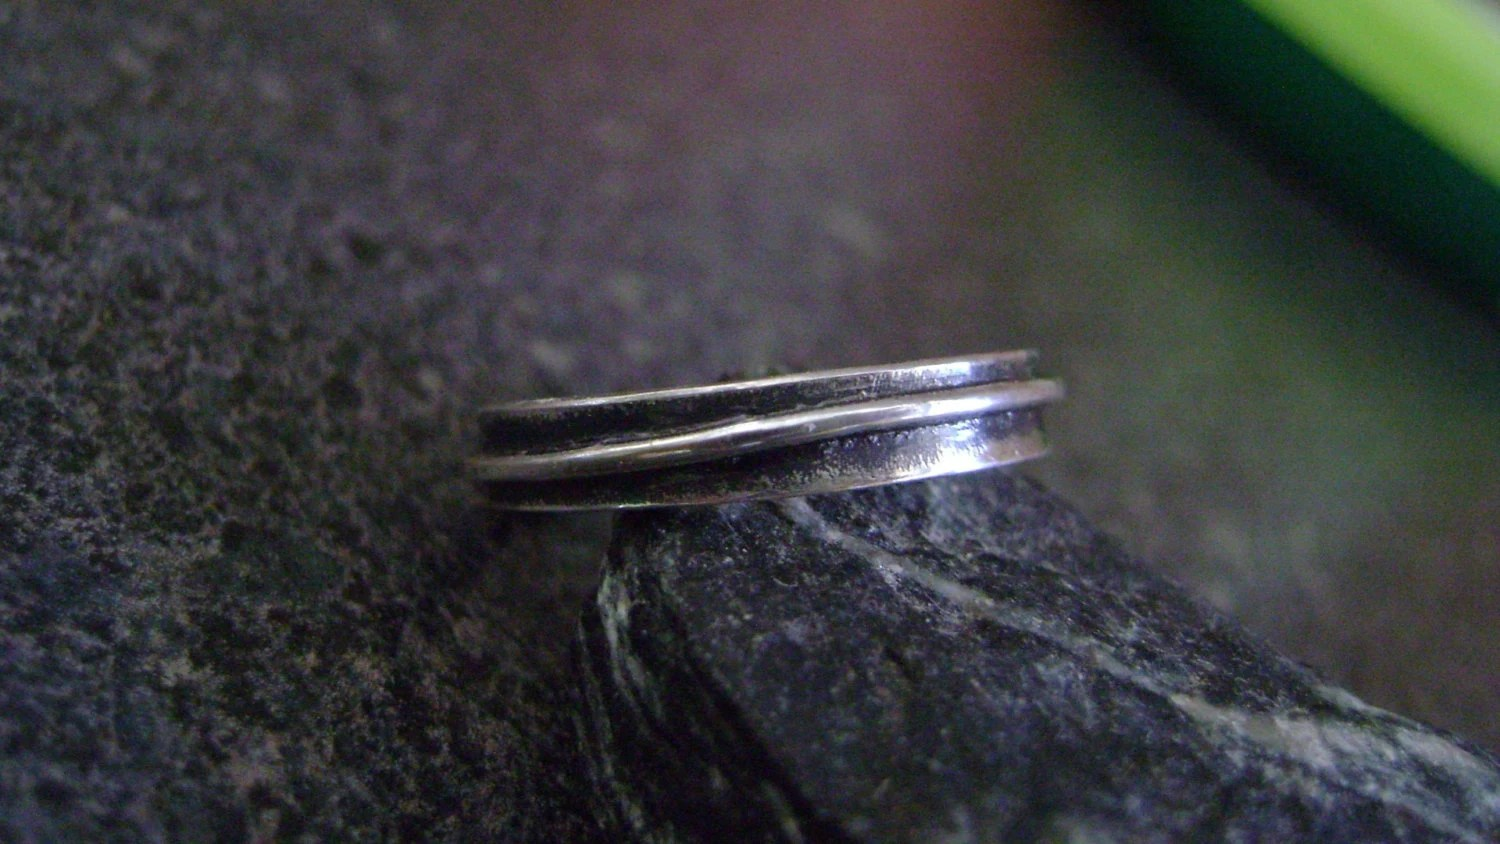 THIN LINE - Wedding Band, Sterling Silver Ring, Artisan Rings, Size 9.25, Wedding Rings, Antiqued Finish Ring - truformjewelry